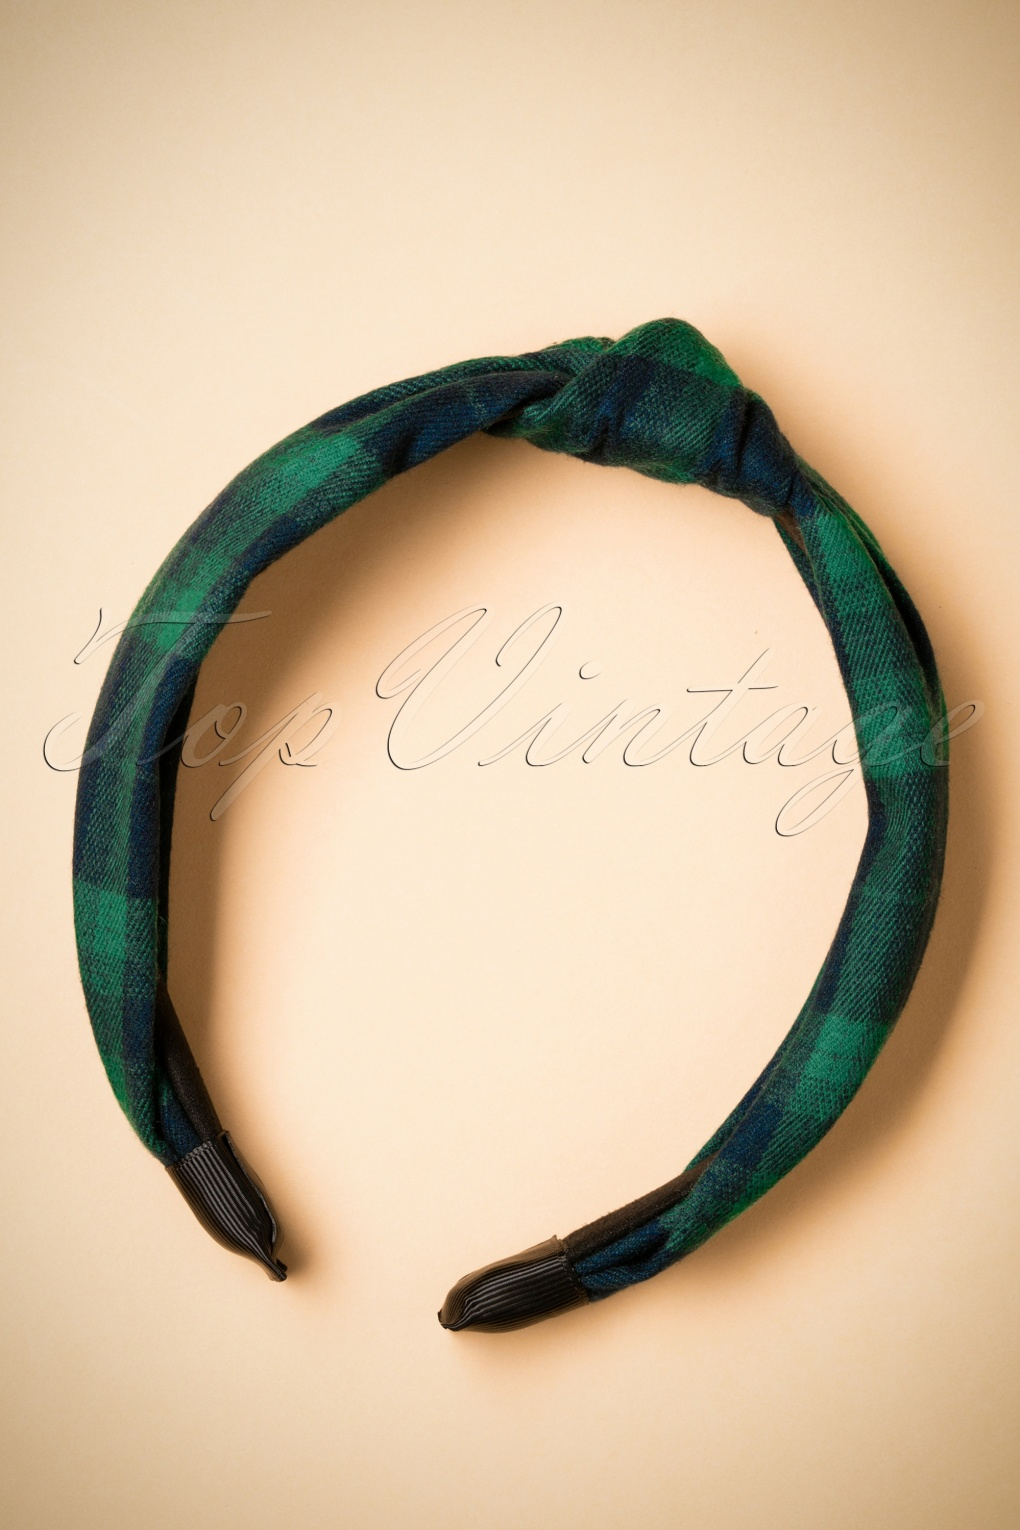 Vintage Hair Accessories: Combs, Headbands, Flowers, Scarf, Wigs 50s Tartan Hairband in Green and Navy £9.60 AT vintagedancer.com